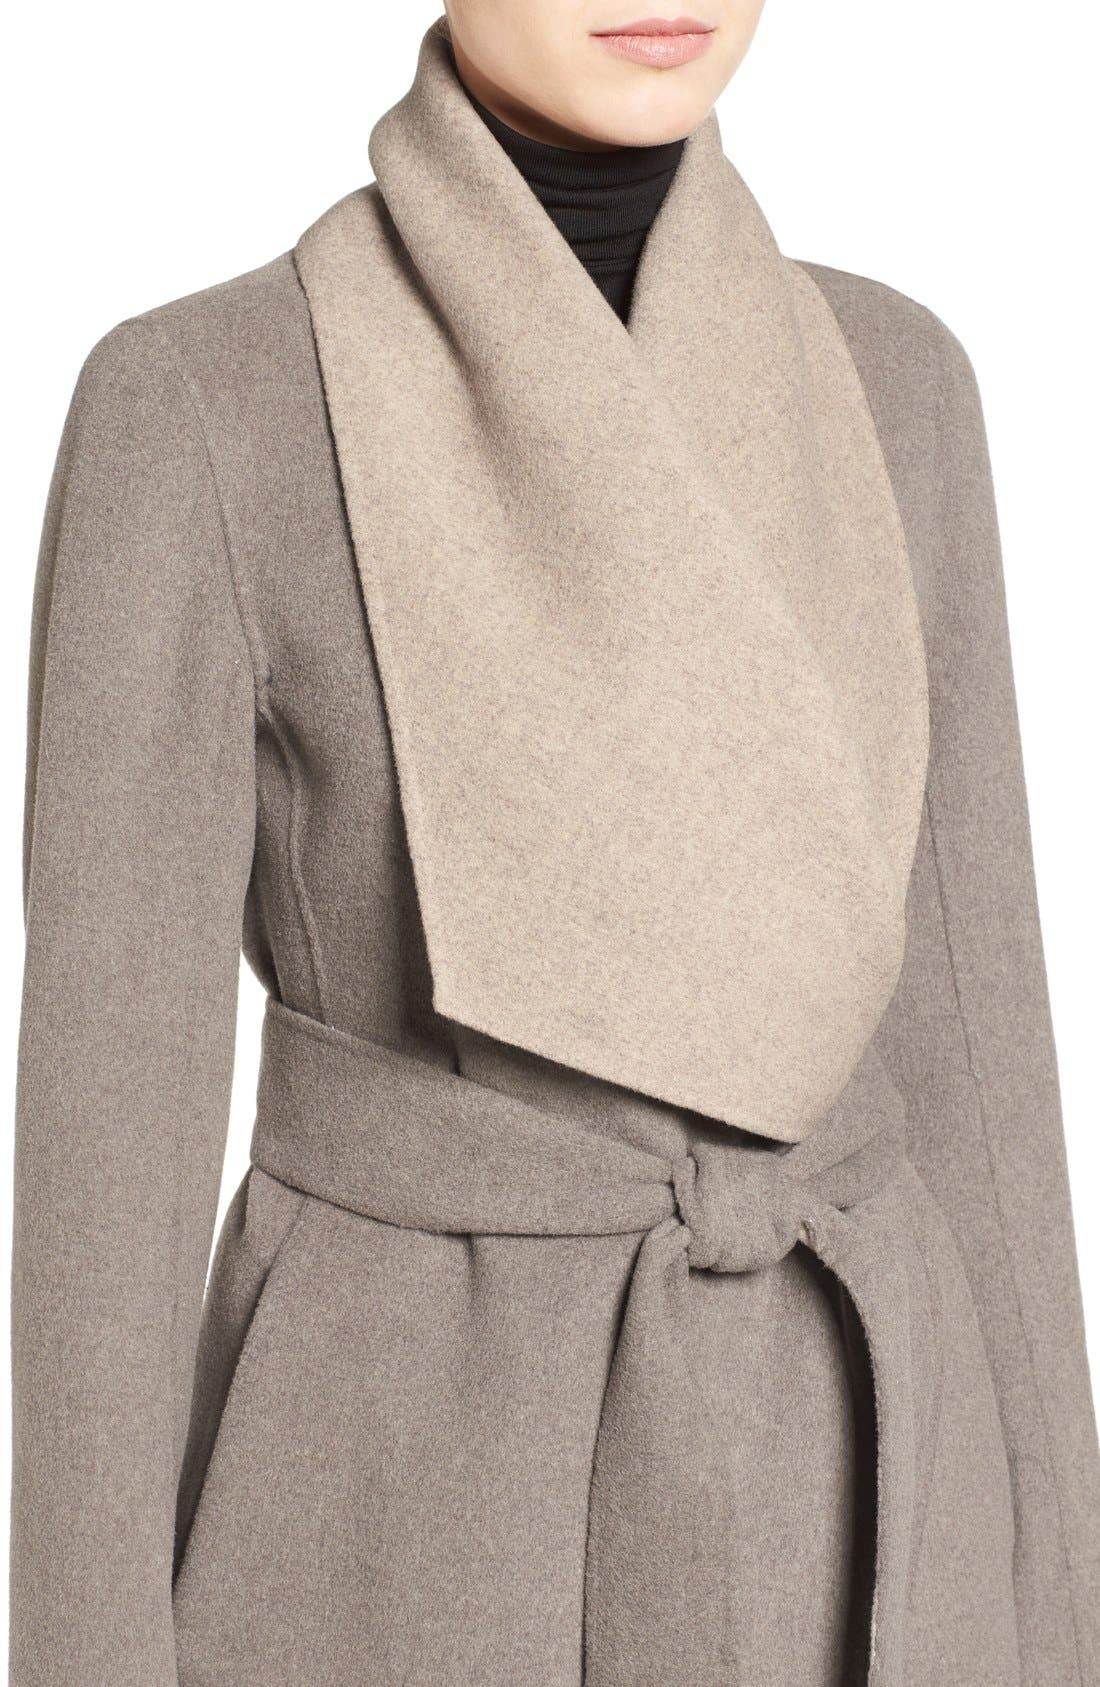 Alternate Image 4  - Diane von Furstenberg Reversible Double Face Wrap Coat